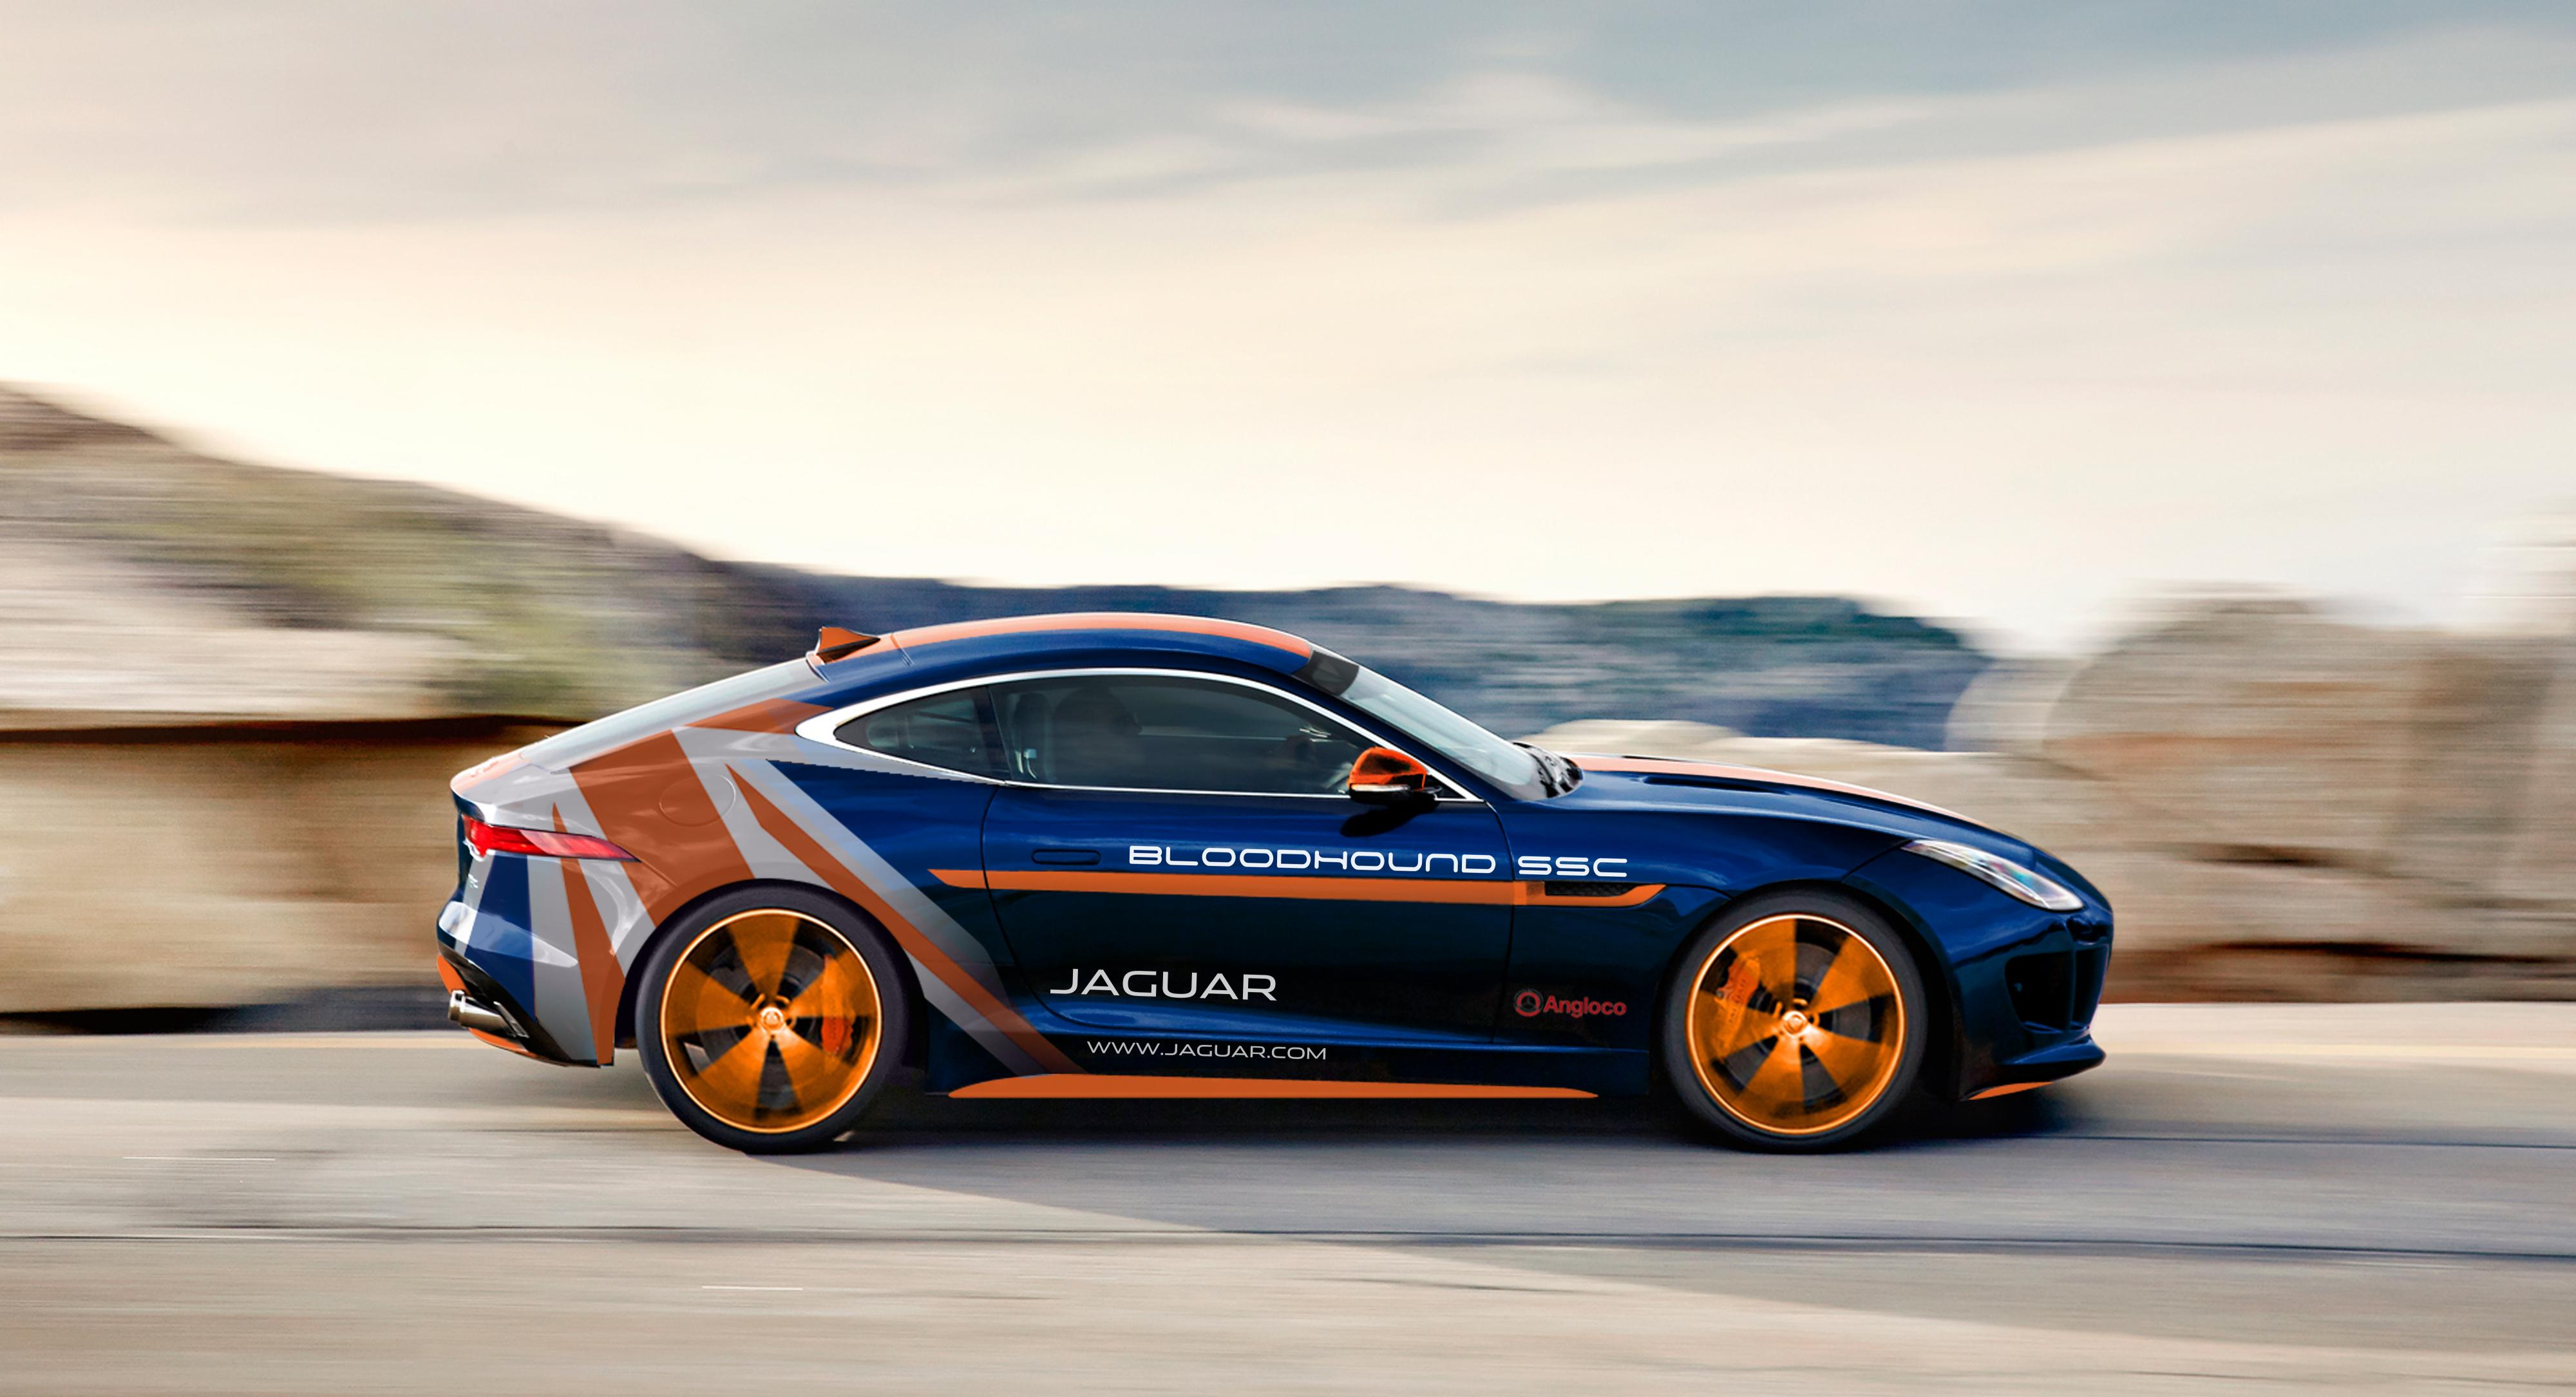 Attempt To Break Land Speed Record Custom Jaguar F Type Will Make Sure Bloodhound